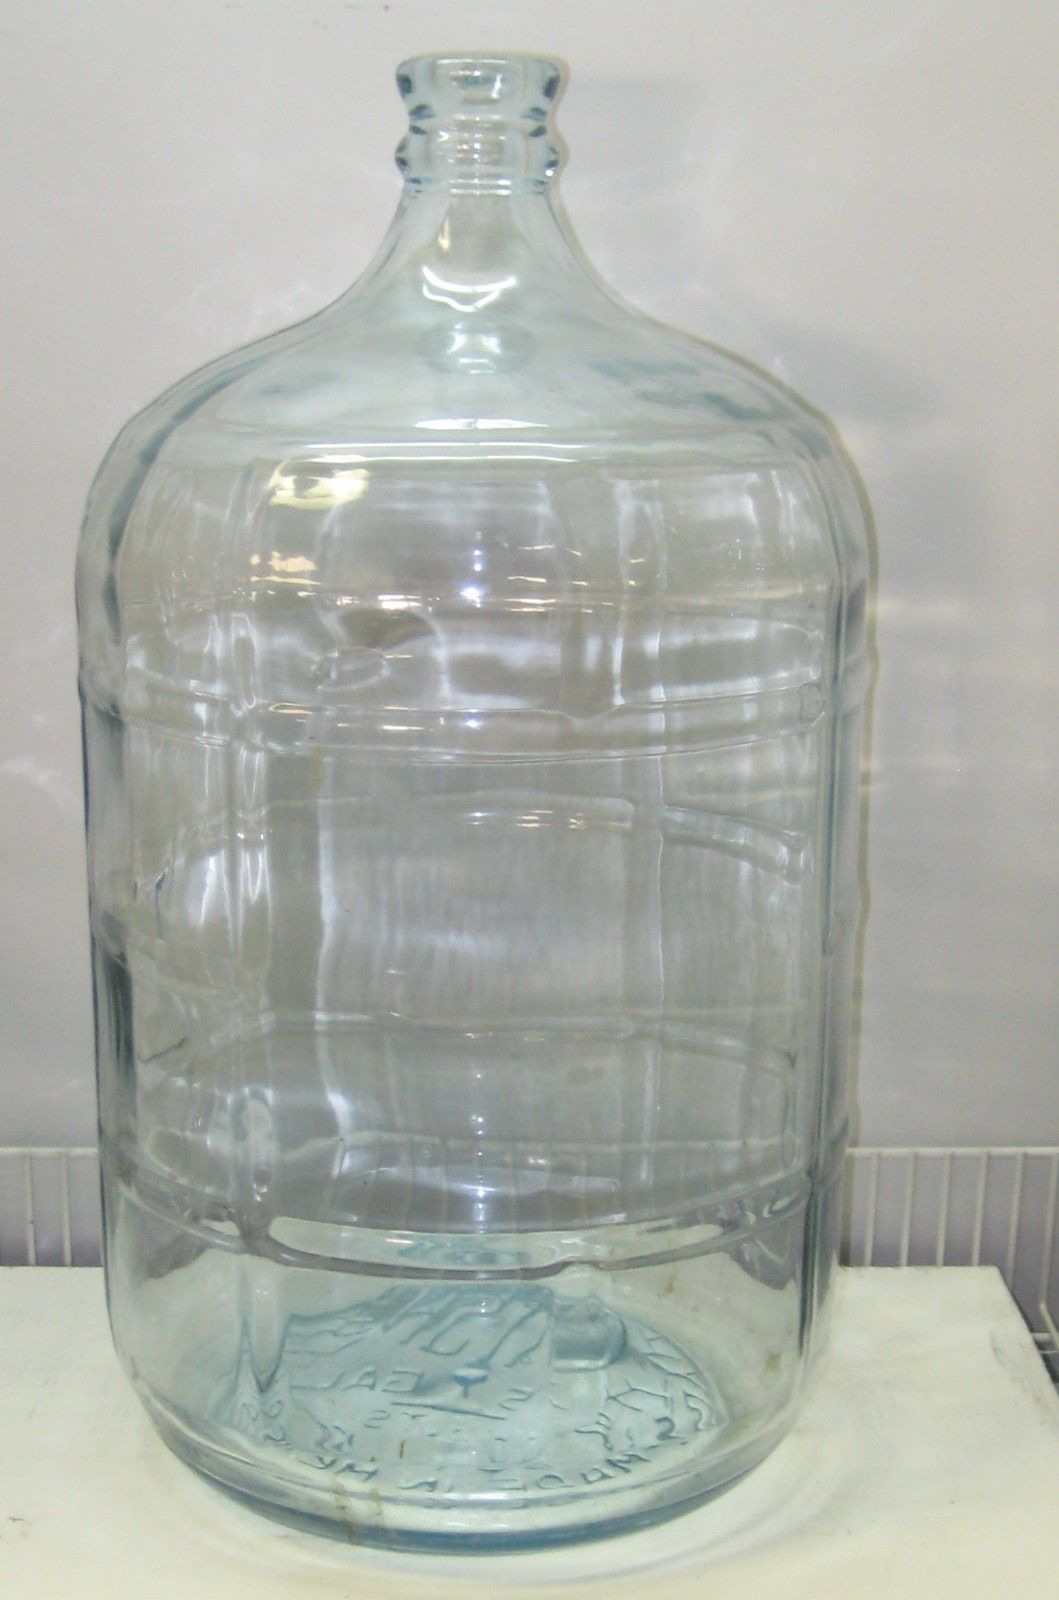 Vintage Crisa 5 Gallon Glass Water Bottle and 50 similar items